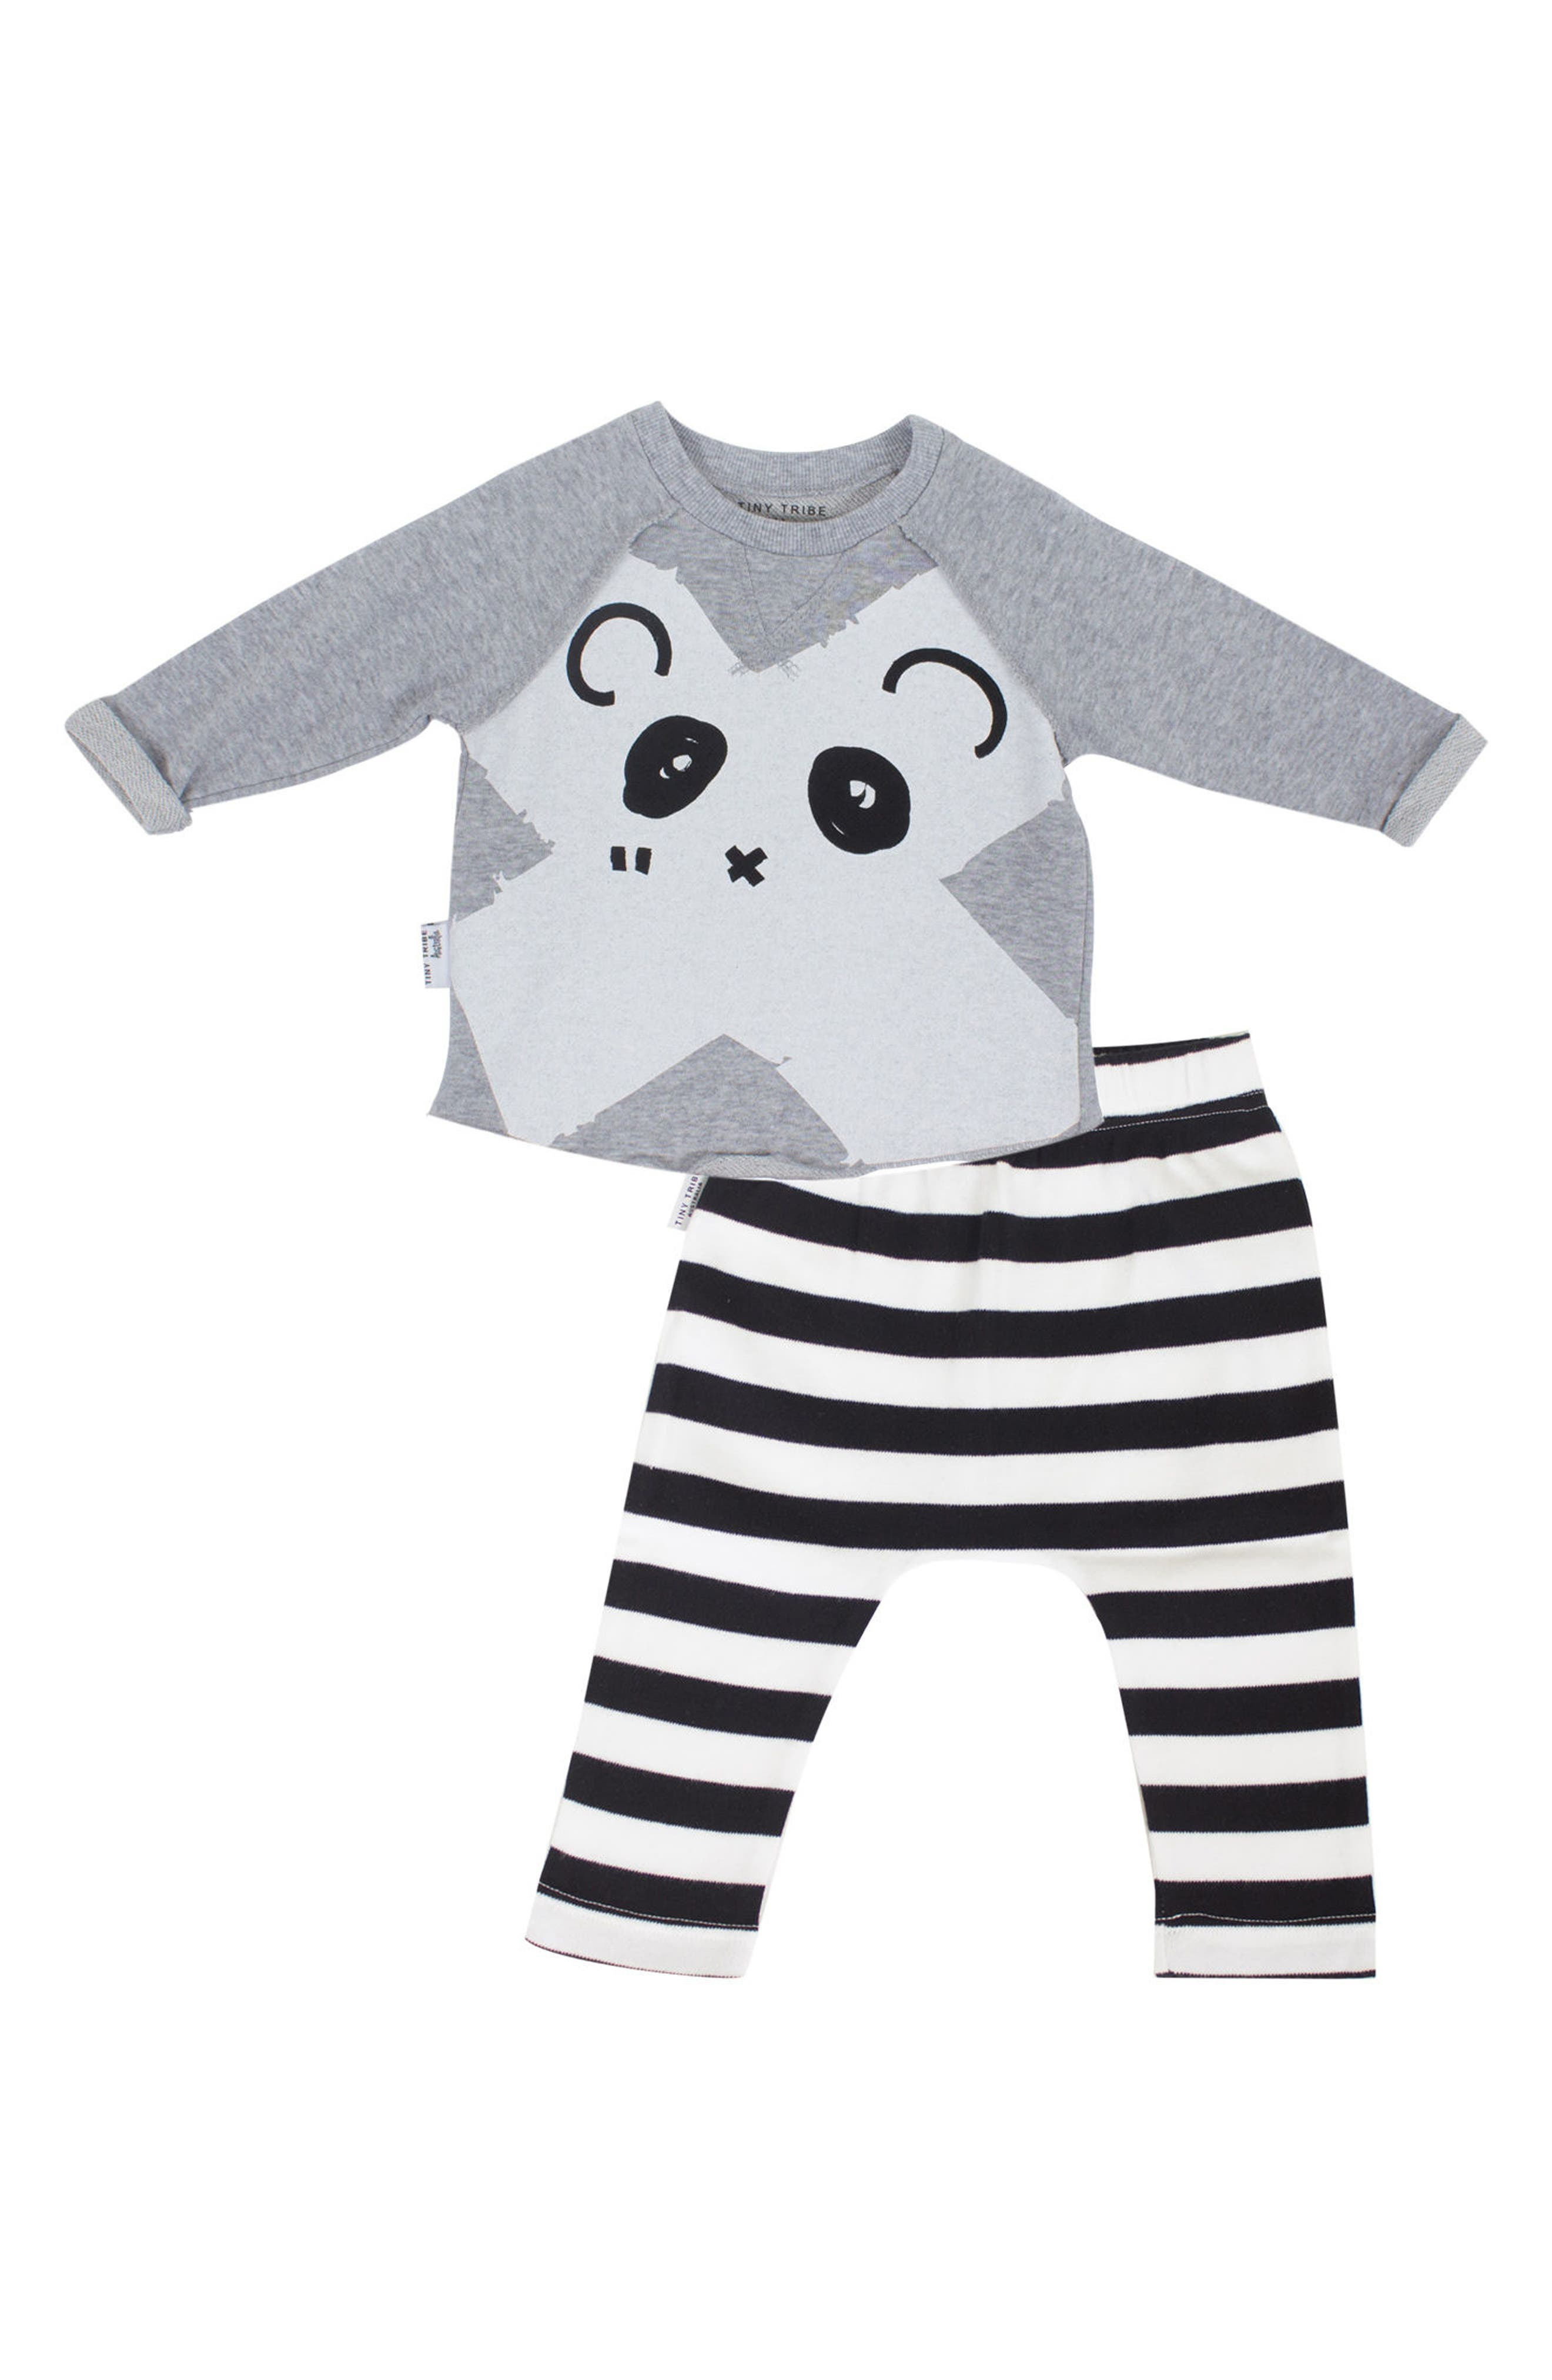 Panda Sweatshirt & Leggings Set,                             Main thumbnail 1, color,                             Grey And Black